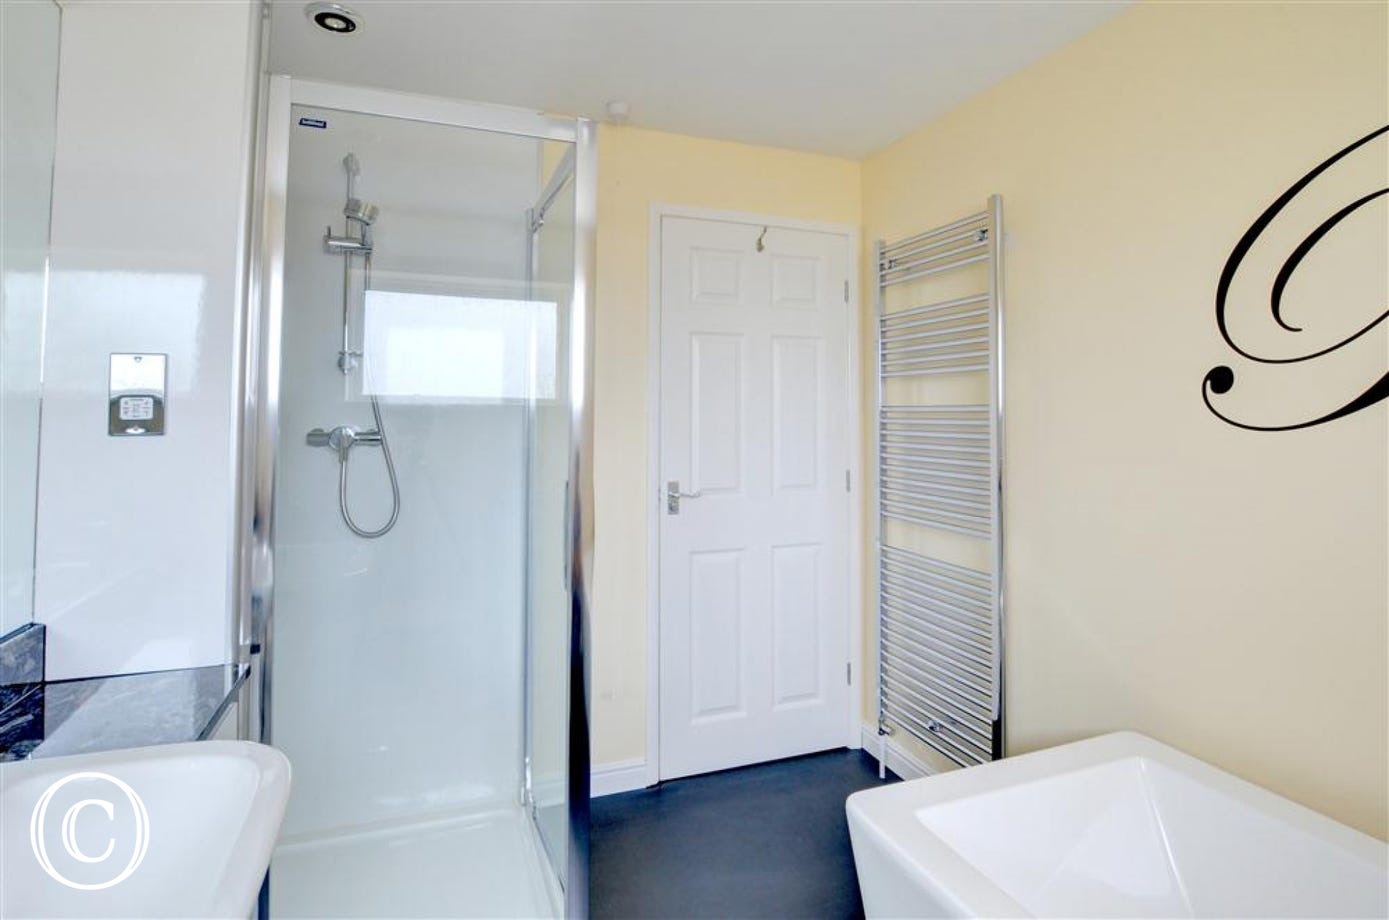 Alternative view of the bathroom showing shower cubicle.